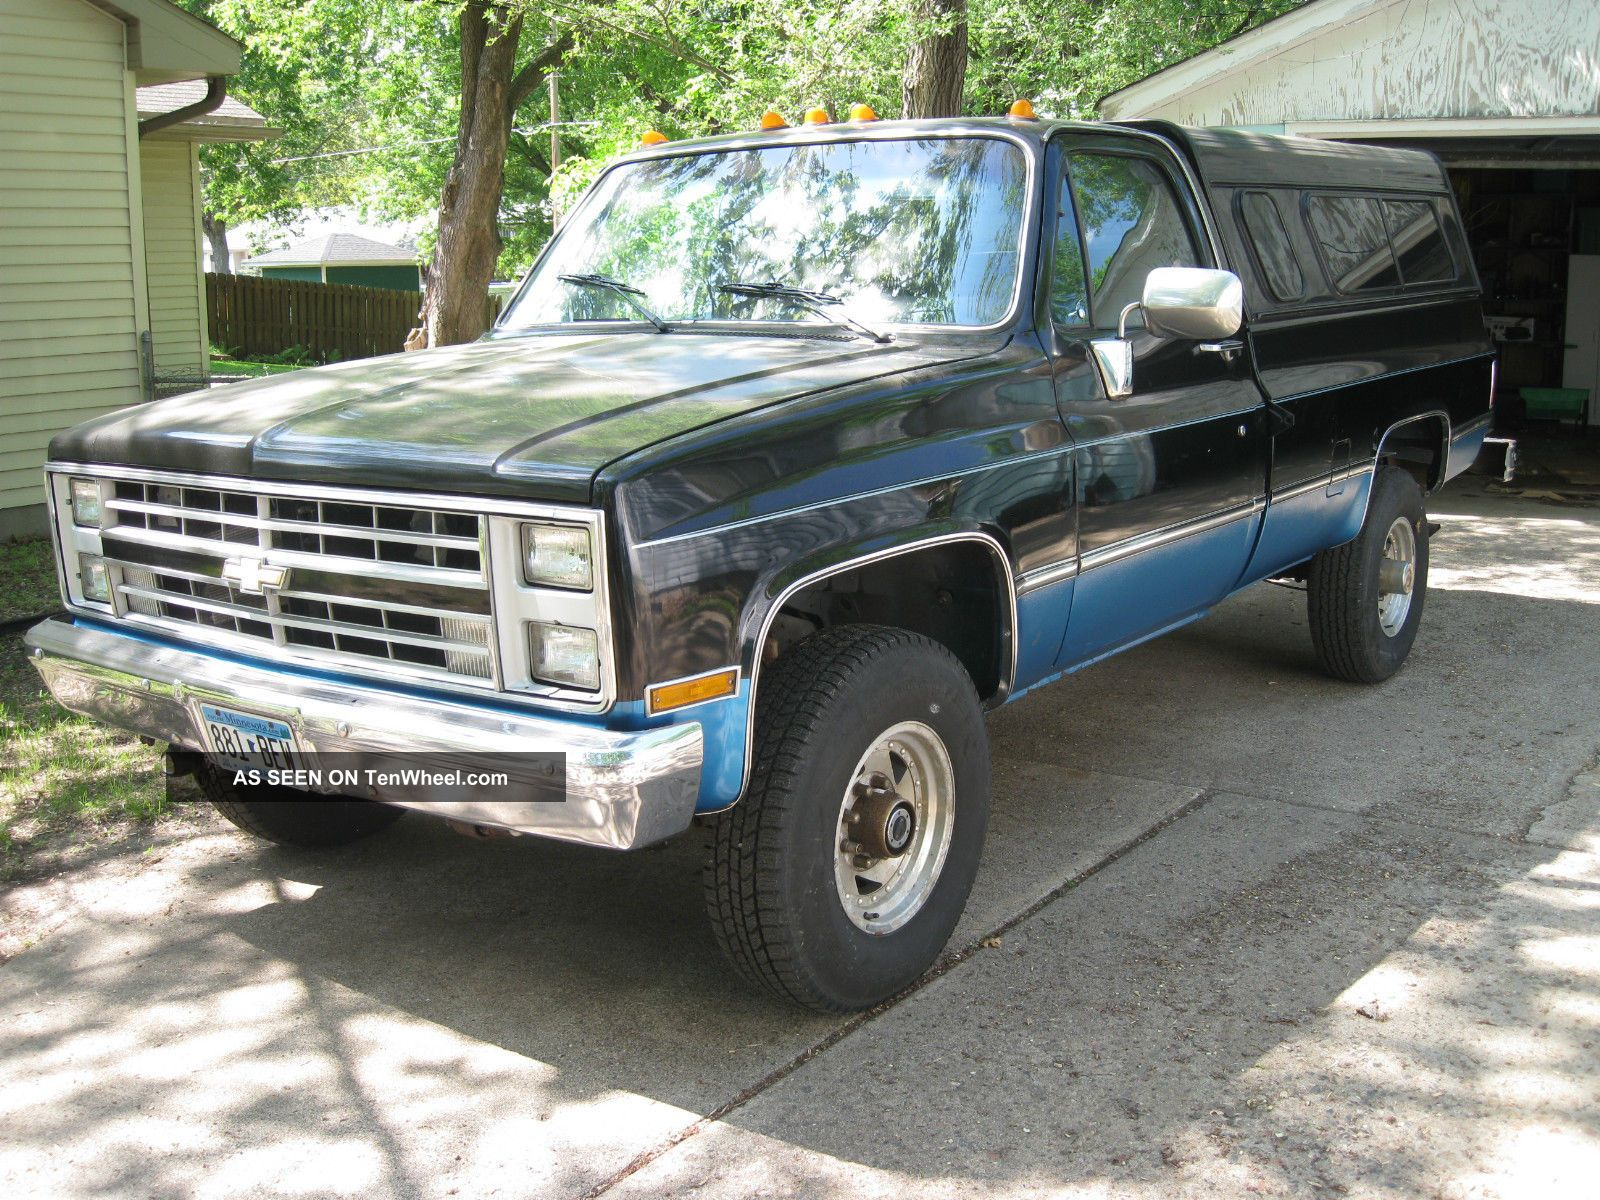 1977 Chev Pick Up With 1986 4x4 Drive Train And Suspension. C/K Pickup